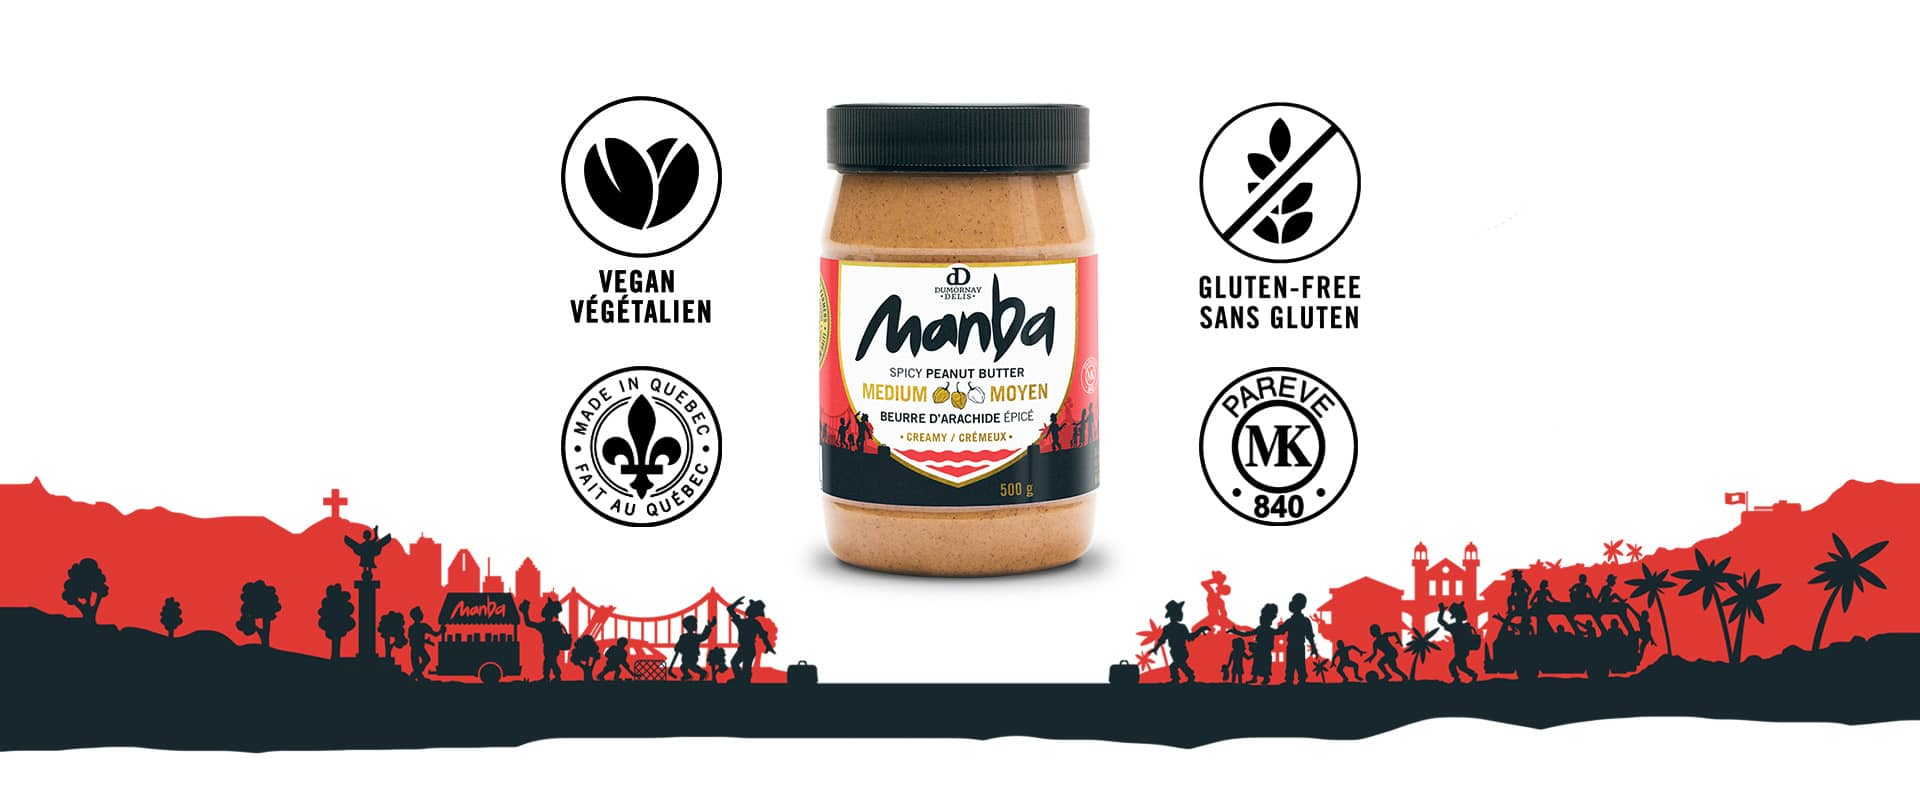 Manba Banner - Spicy peanut Jar with Vegan - Gluten free - Kosher - Made in canada icon